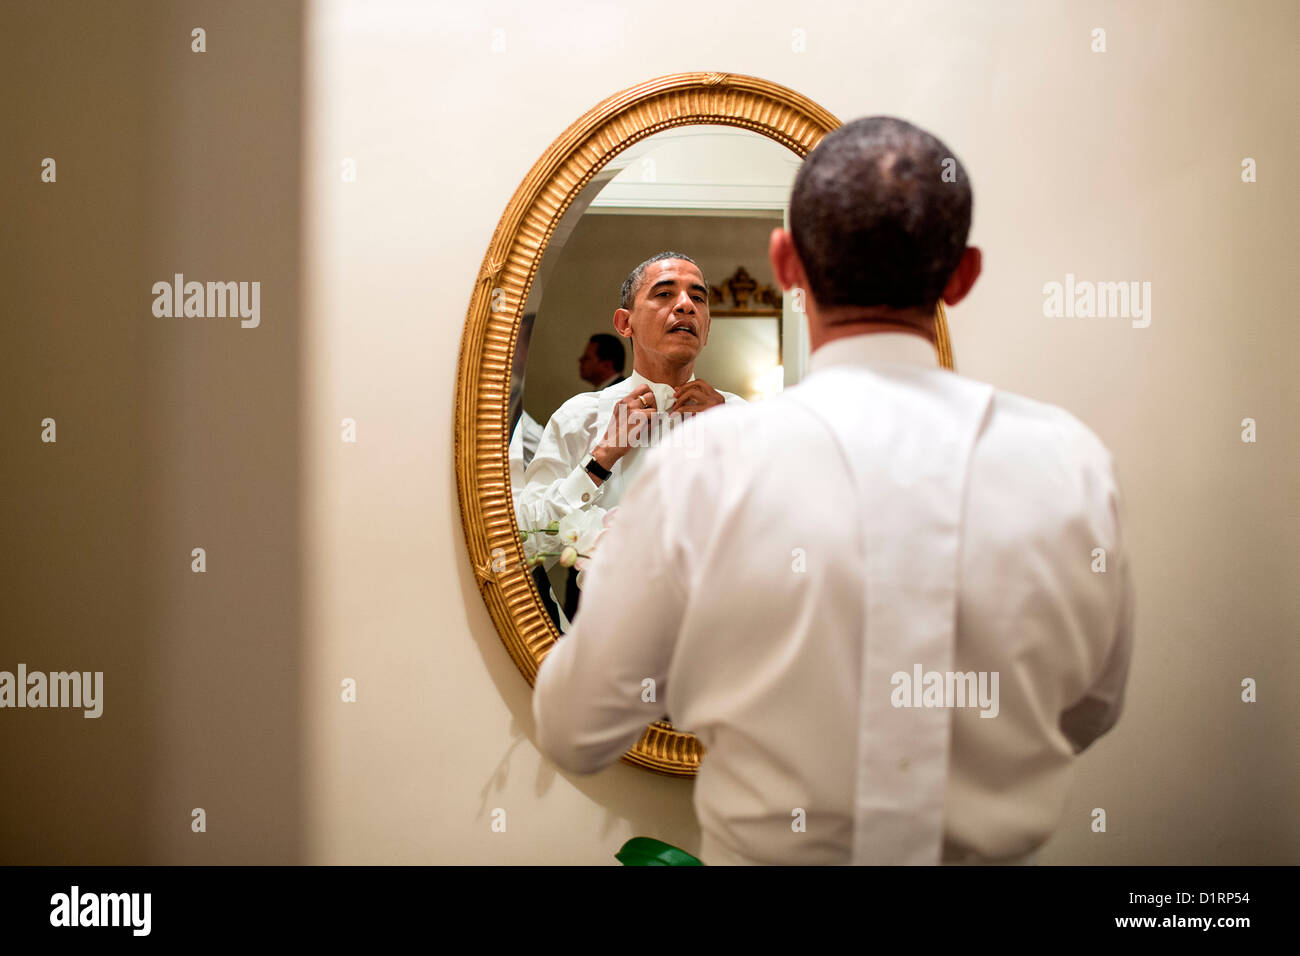 US President Barack Obama ties his white tie before the Alfred E. Smith dinner October 18, 2012 in New York, NY. - Stock Image